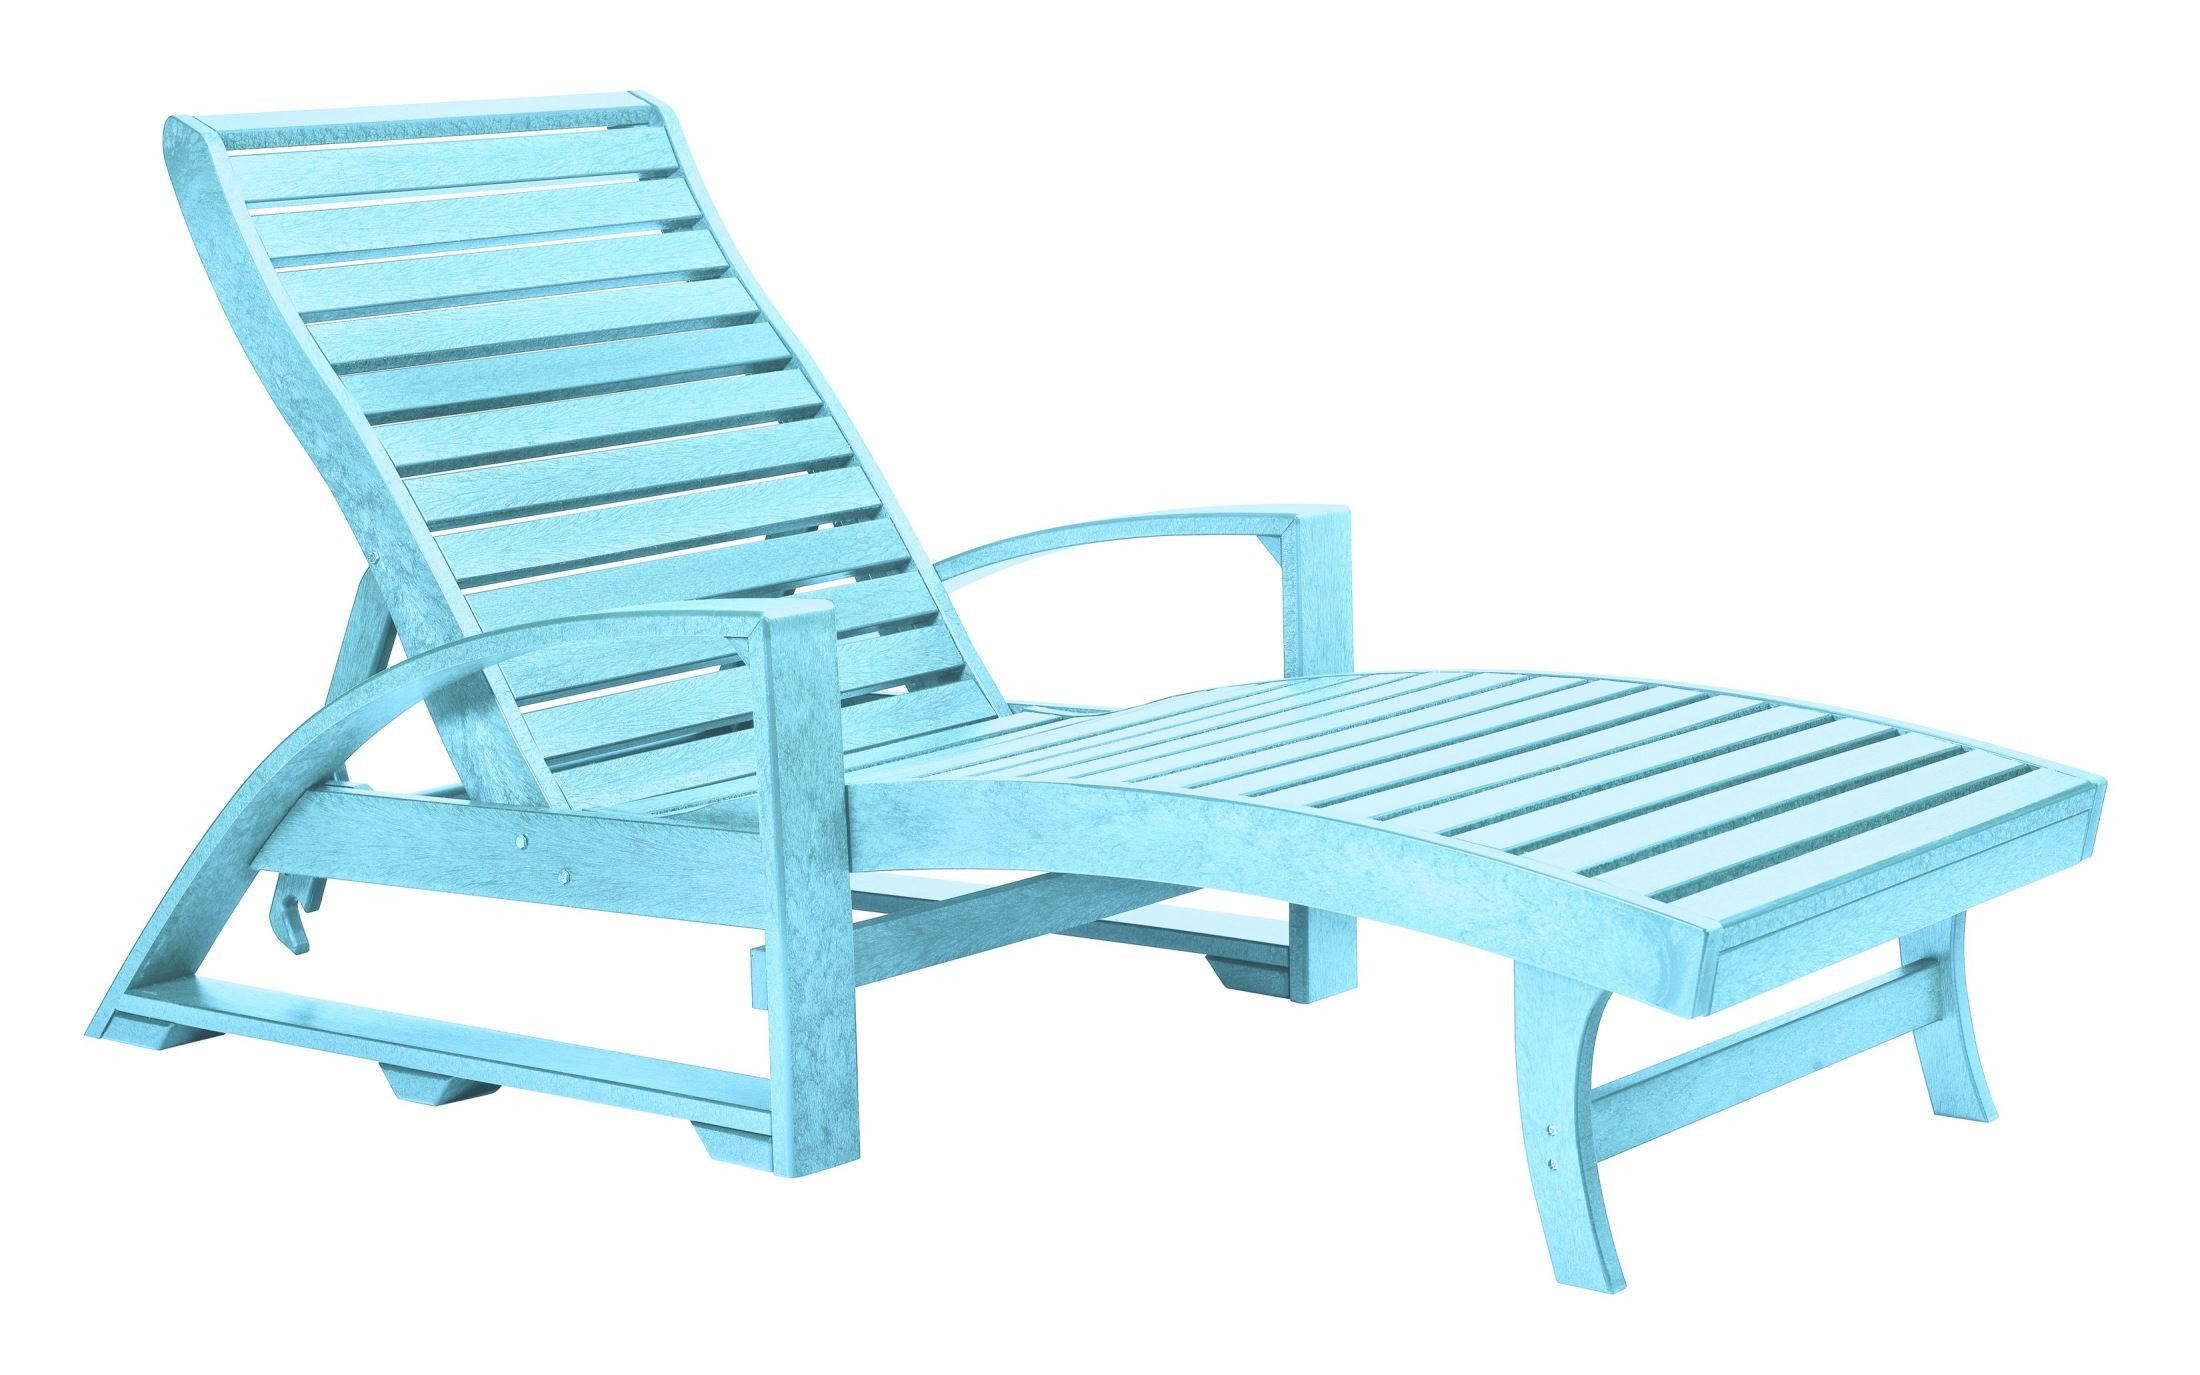 St tropez aqua chaise lounge with wheels from cr plastic for Aqua chaise lounge